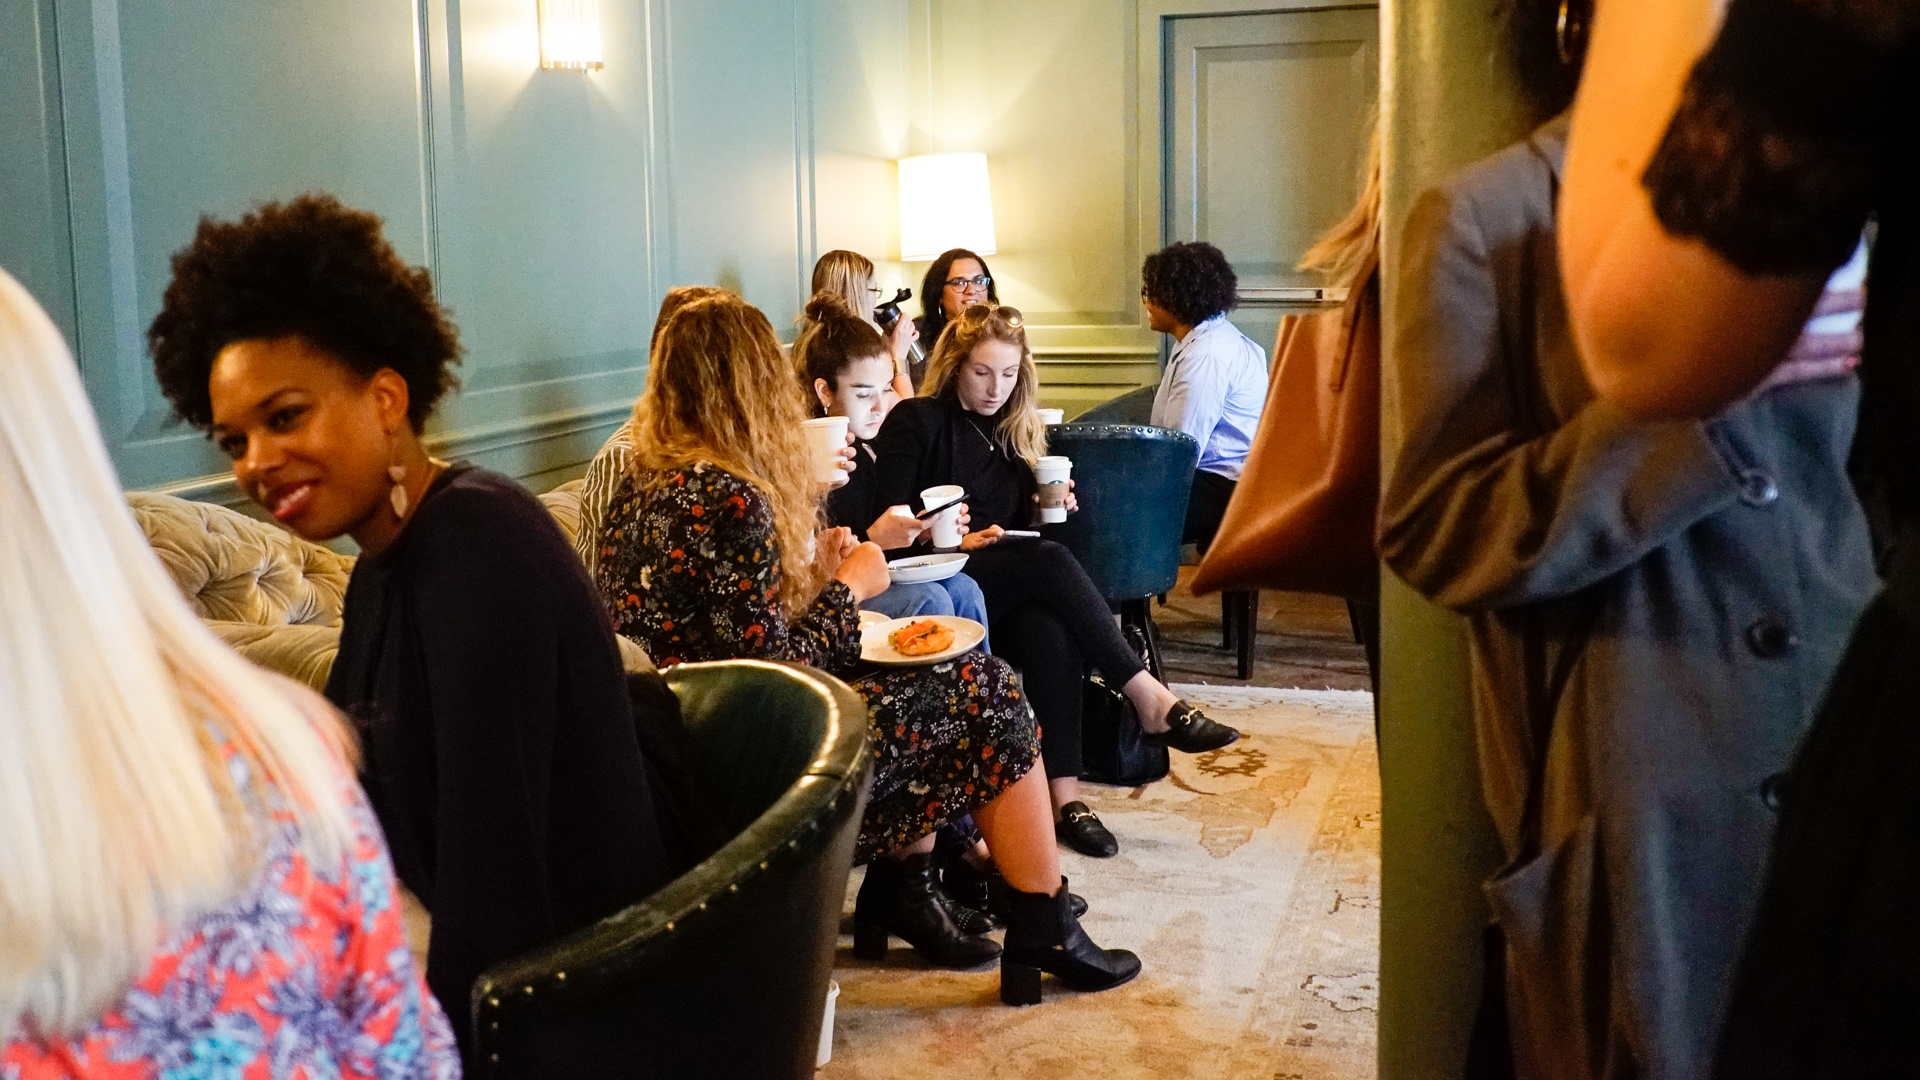 Networking with peers over croissants and coffee